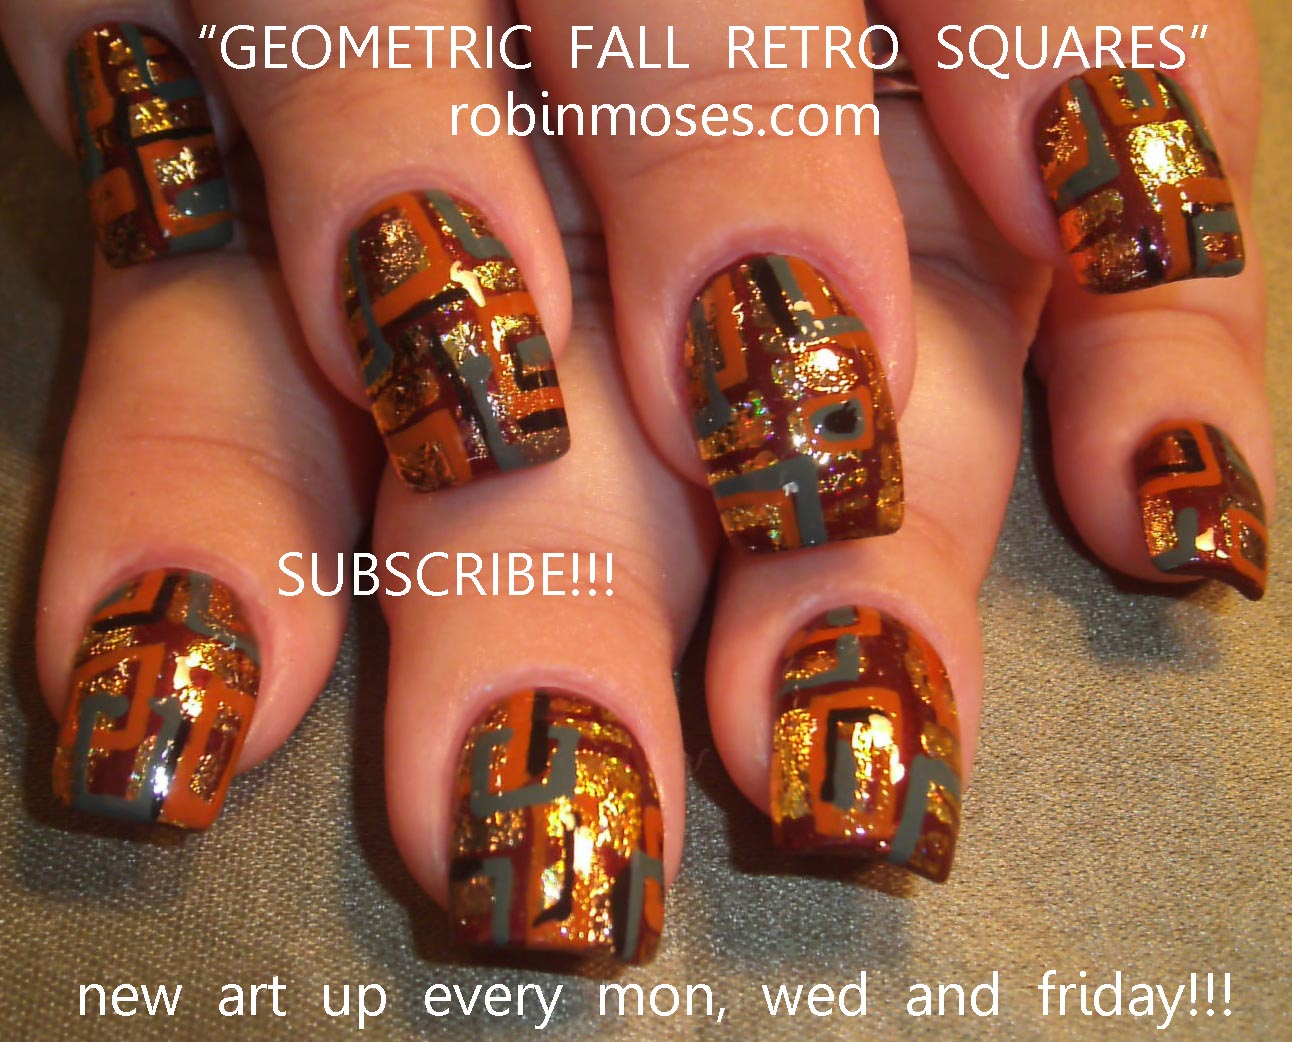 Fall nail autumn nail retro fall nail geometic nail fall fall nail autumn nail retro fall nail geometic nail fall floral nail fall flower nail fall color nail robinmosesnailart robin moses fall nail prinsesfo Image collections